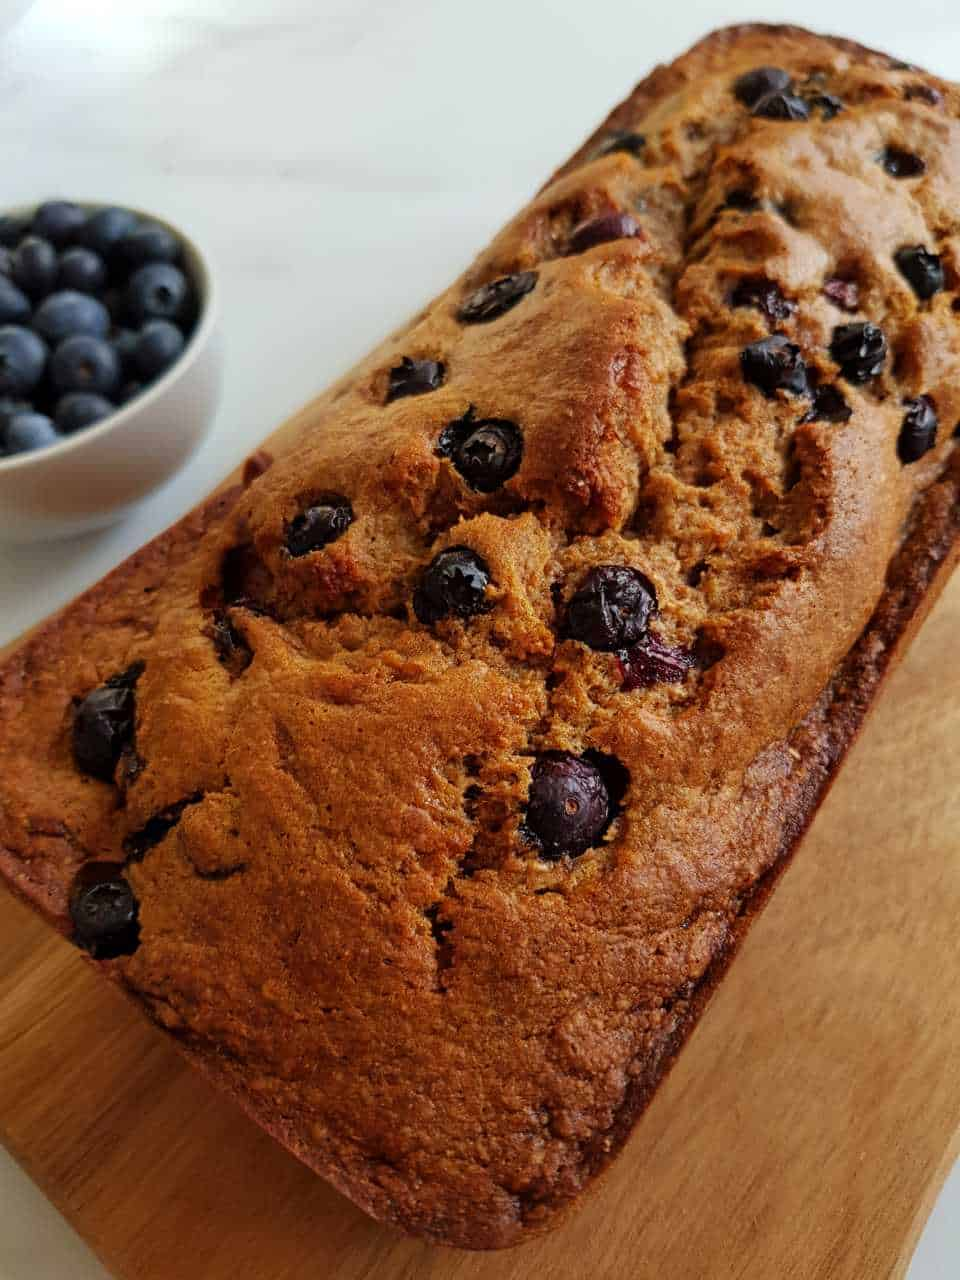 Banana bread with blueberries on a wooden board with a bowl of blueberries on the side.